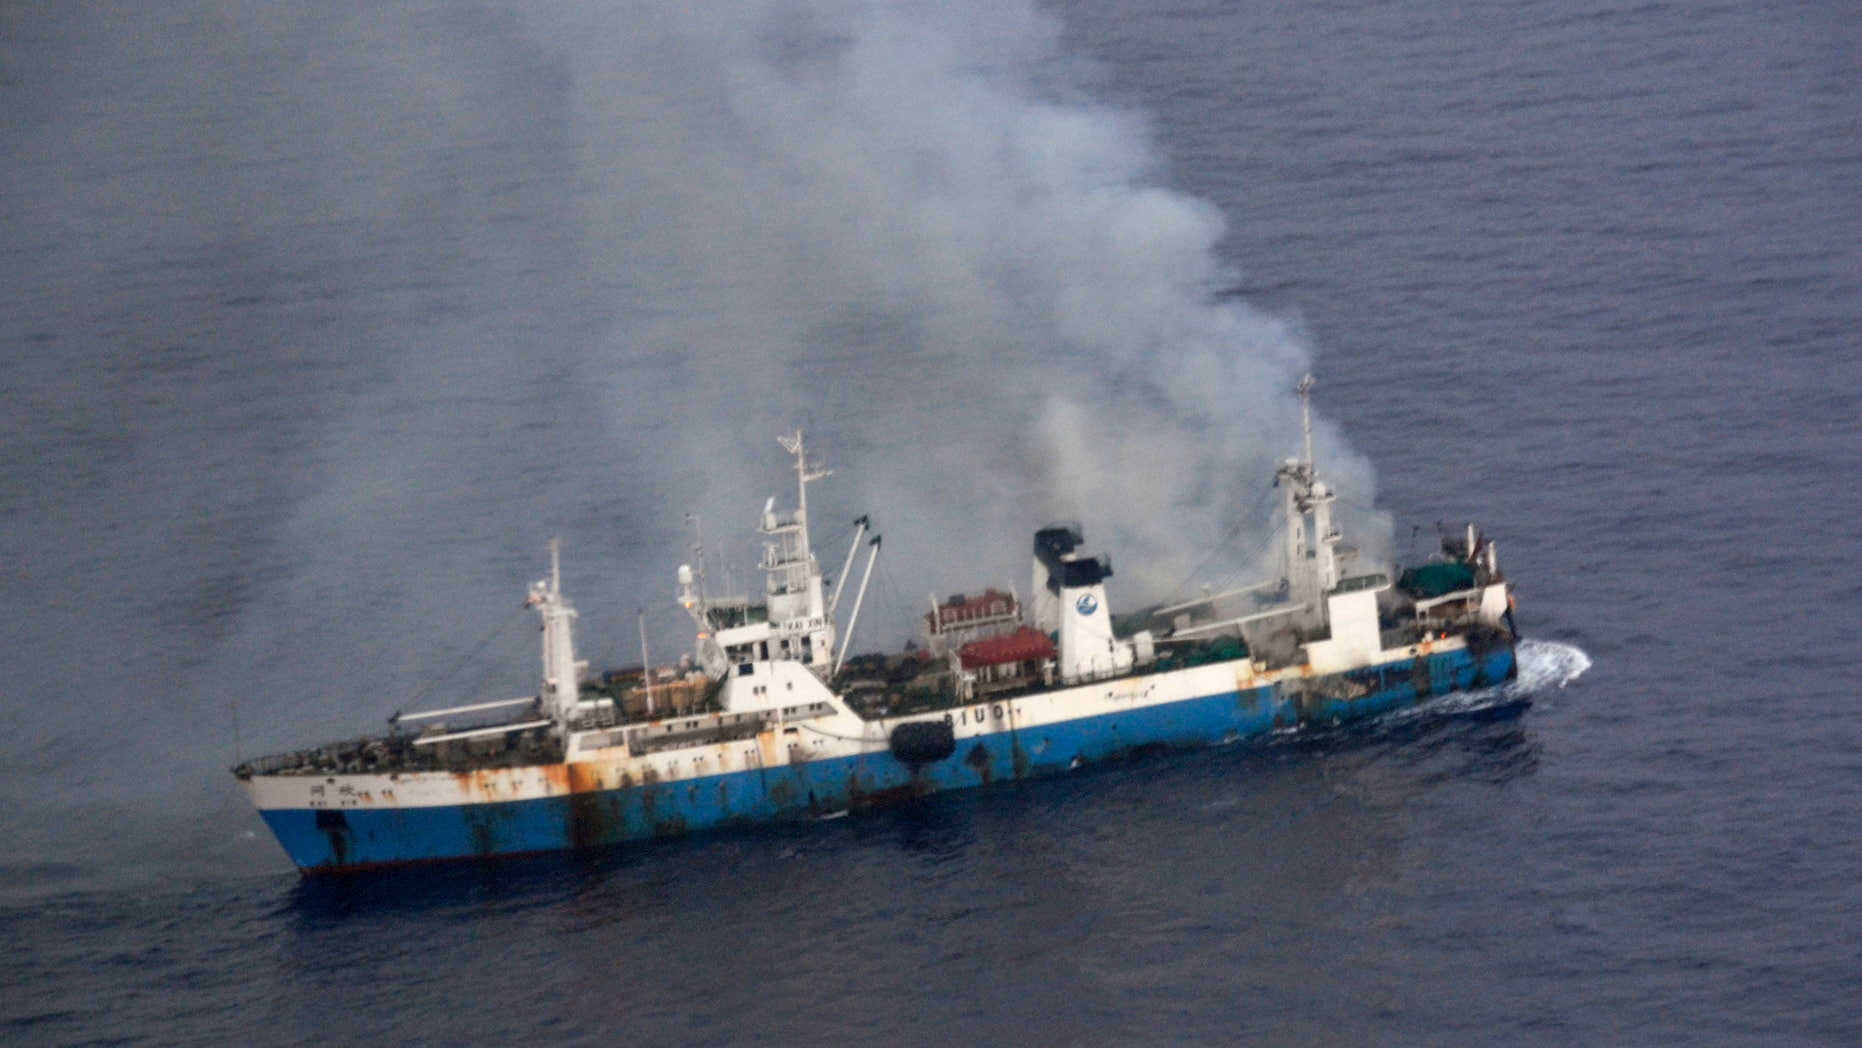 In this picture released by Chile's Air Force, smoke billows from a Chinese factory fishing ship Kai Xin just off the coast of Antarctica, Wednesday, April 17, 2013. Chilean authorities say around 90 crew members have been rescued from the burning ship by the crew of the Norwegian ship Juvel, and Chile's military says it's ready to intervene if necessary to prevent an ecological disaster. (AP Photo/Chile's Air Force)